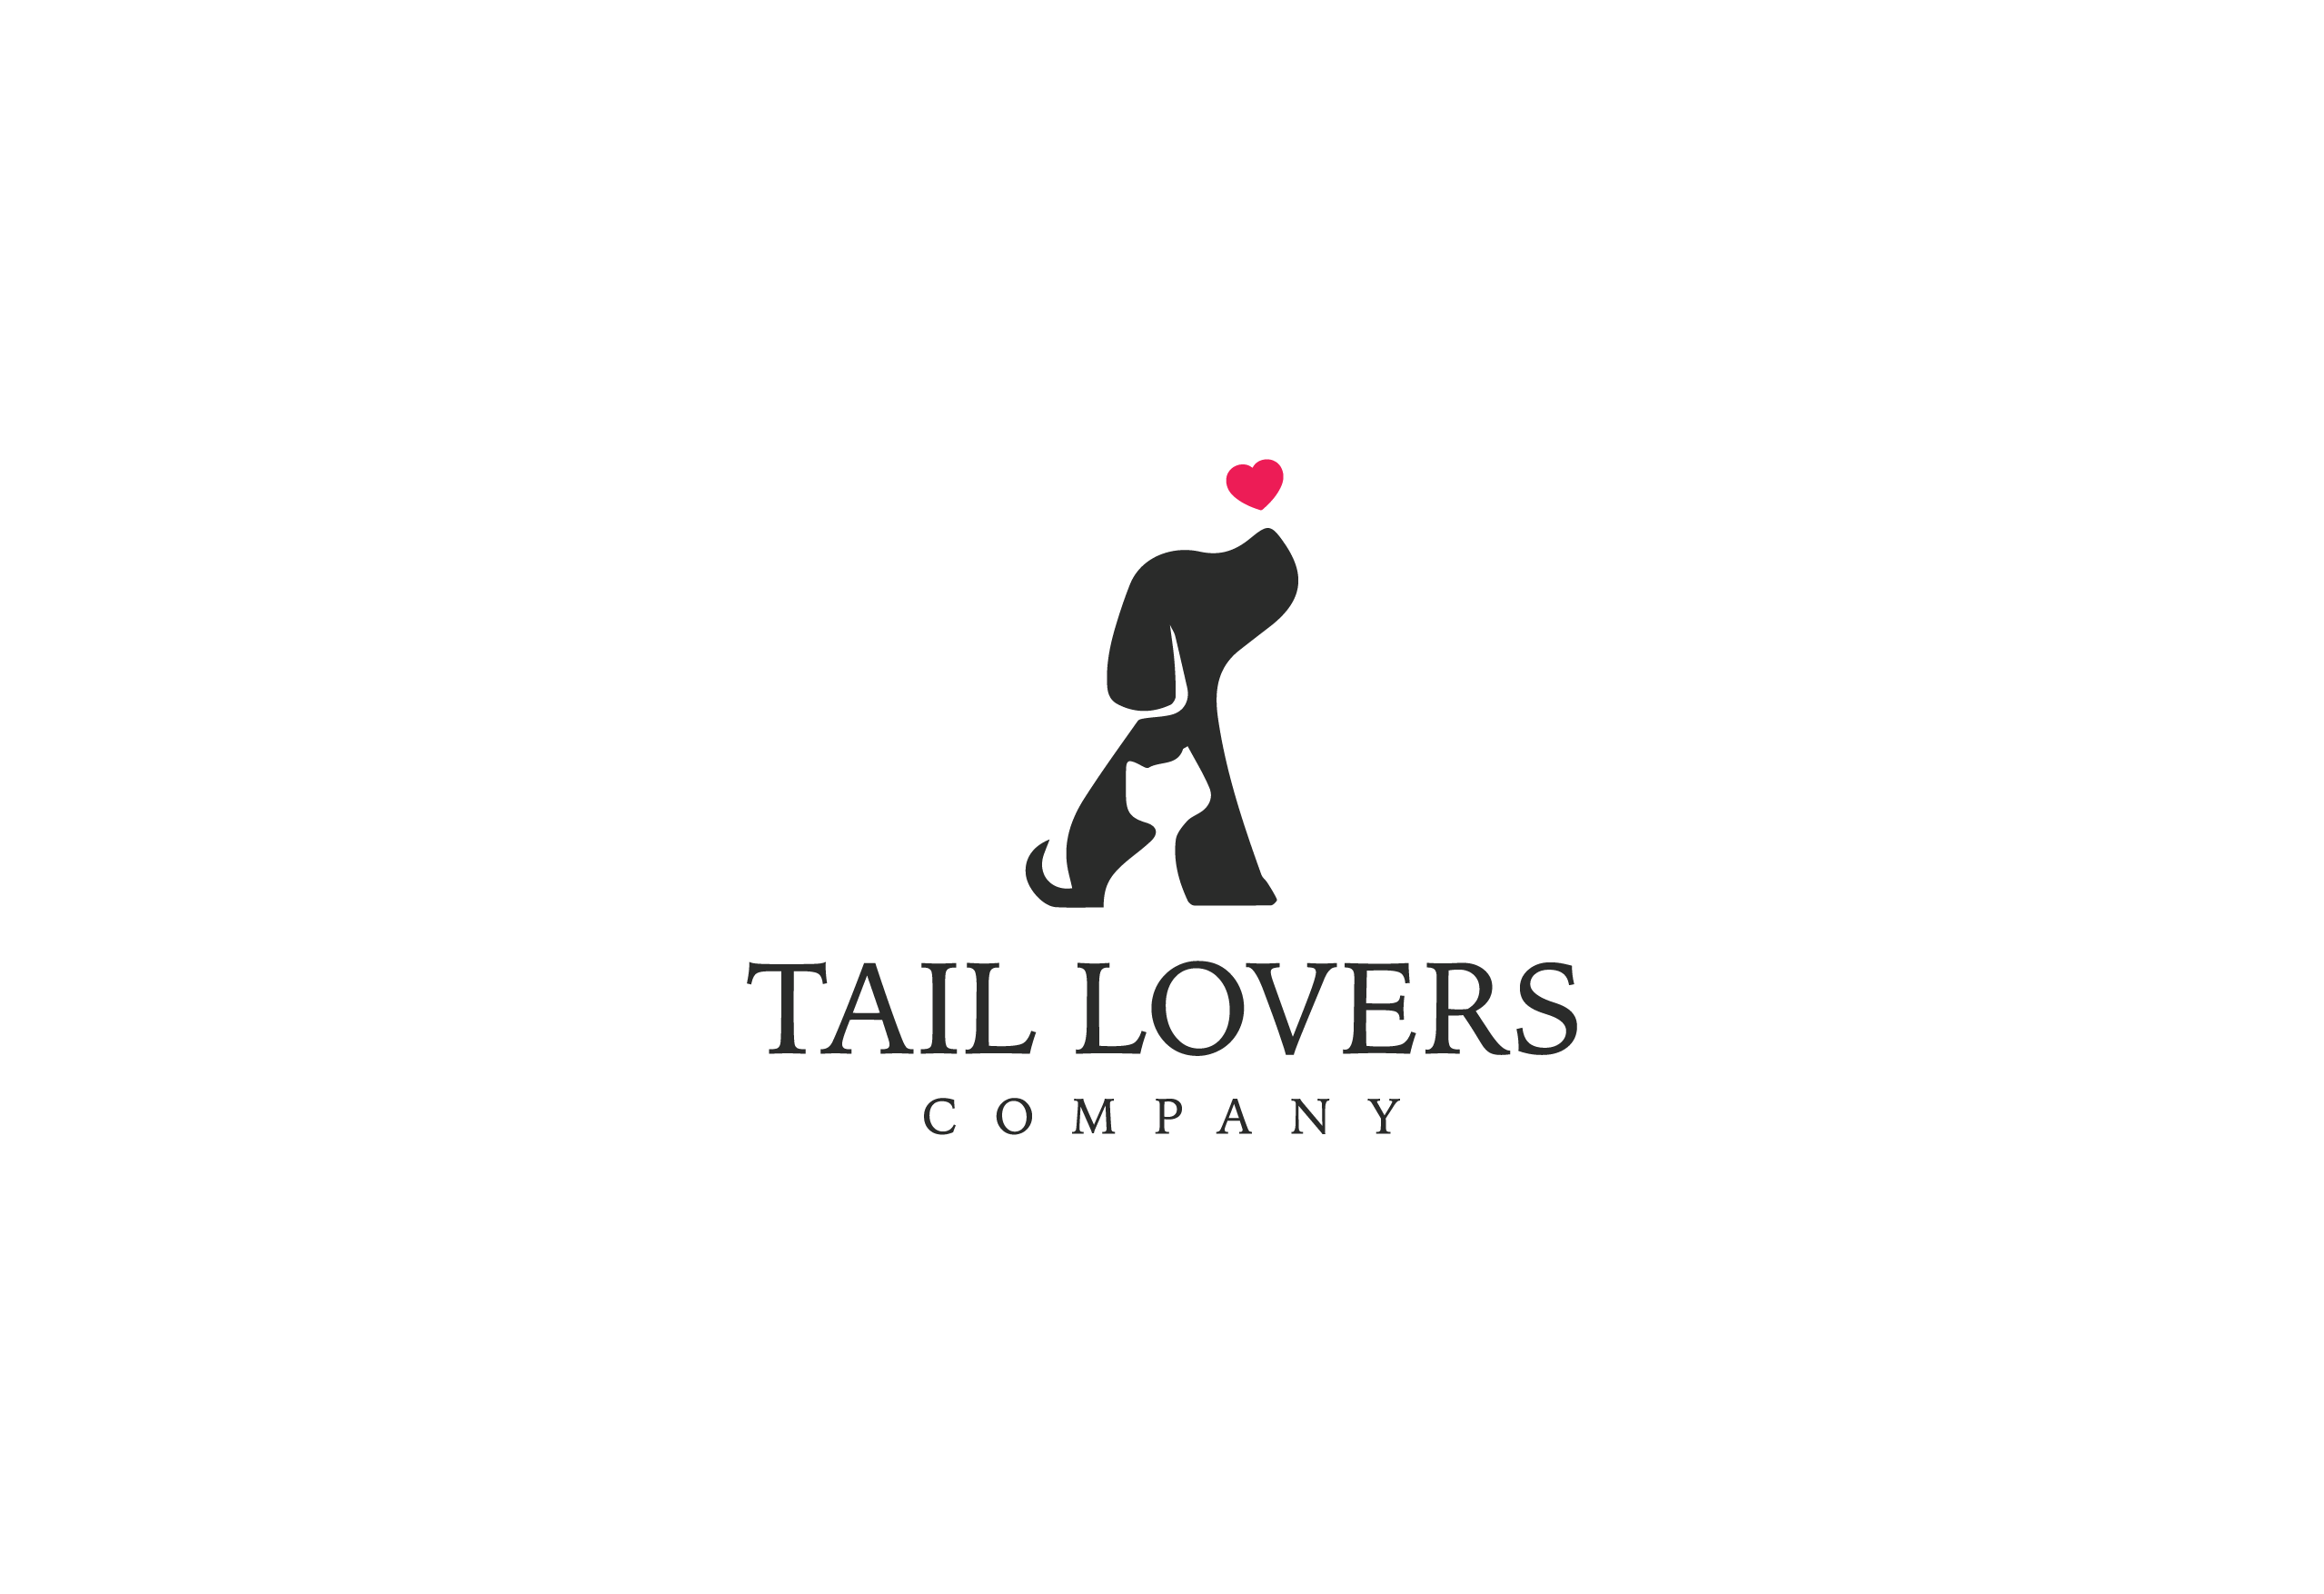 Tail Lovers Company